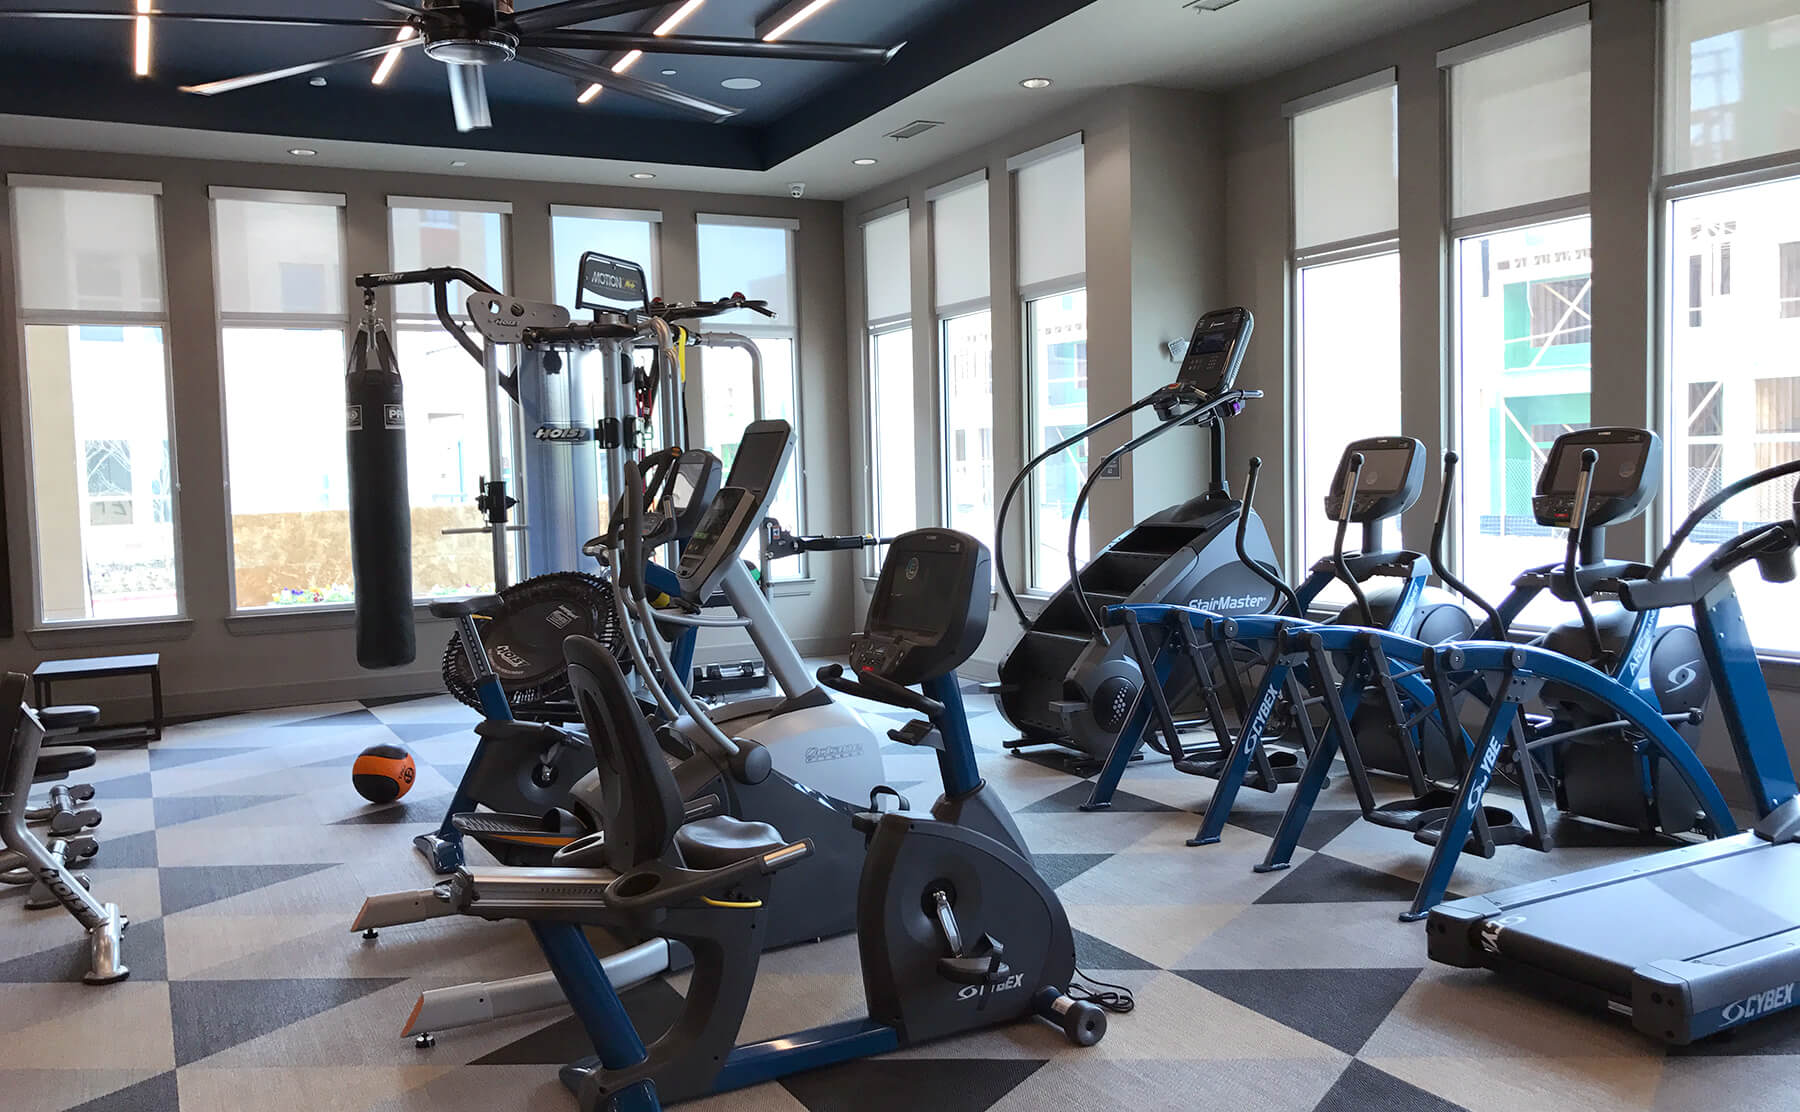 Apartments in Frisco with fitness centers